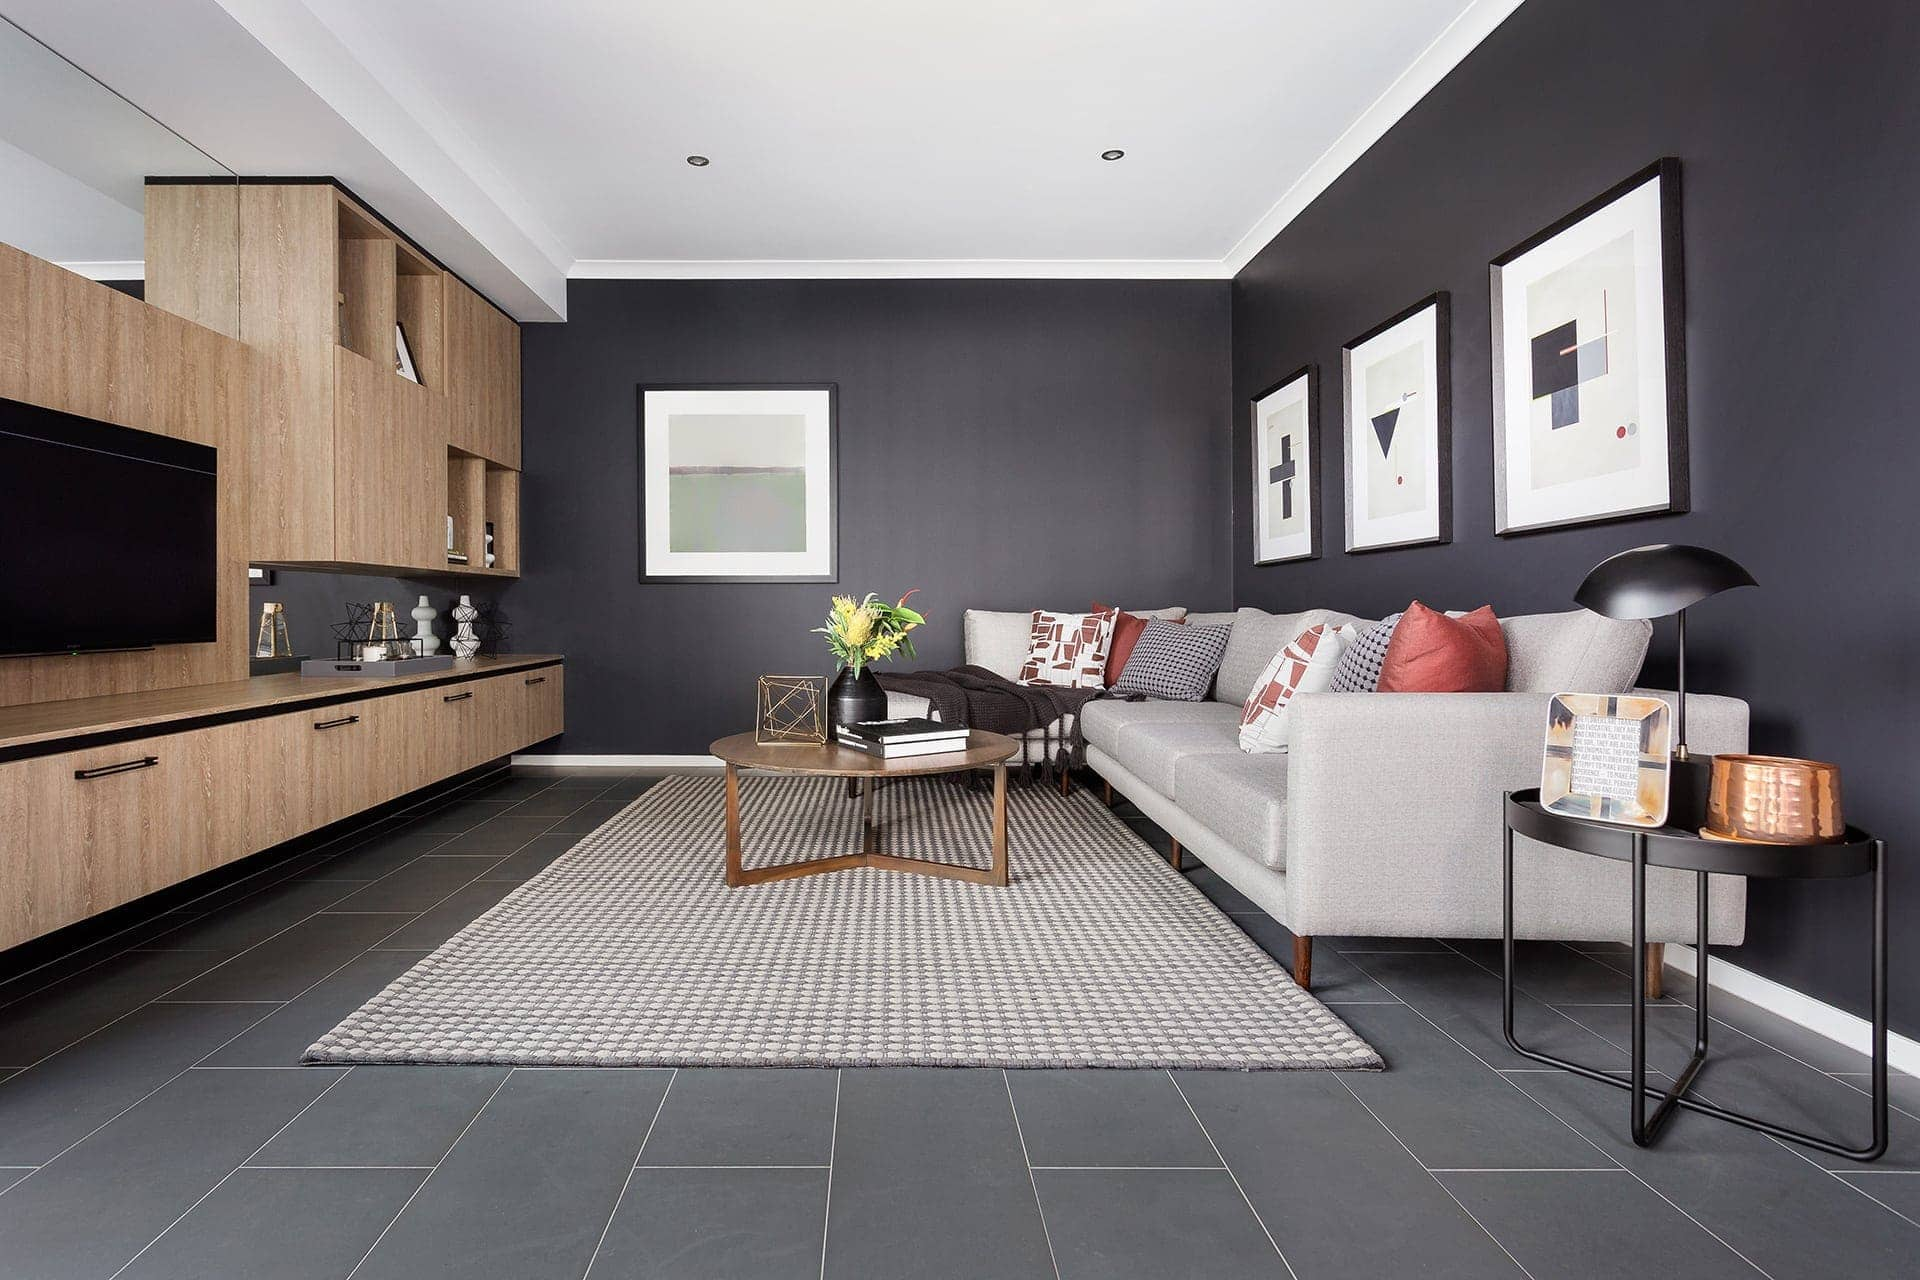 dark grey living room wall with floor tiles in living room from metricon